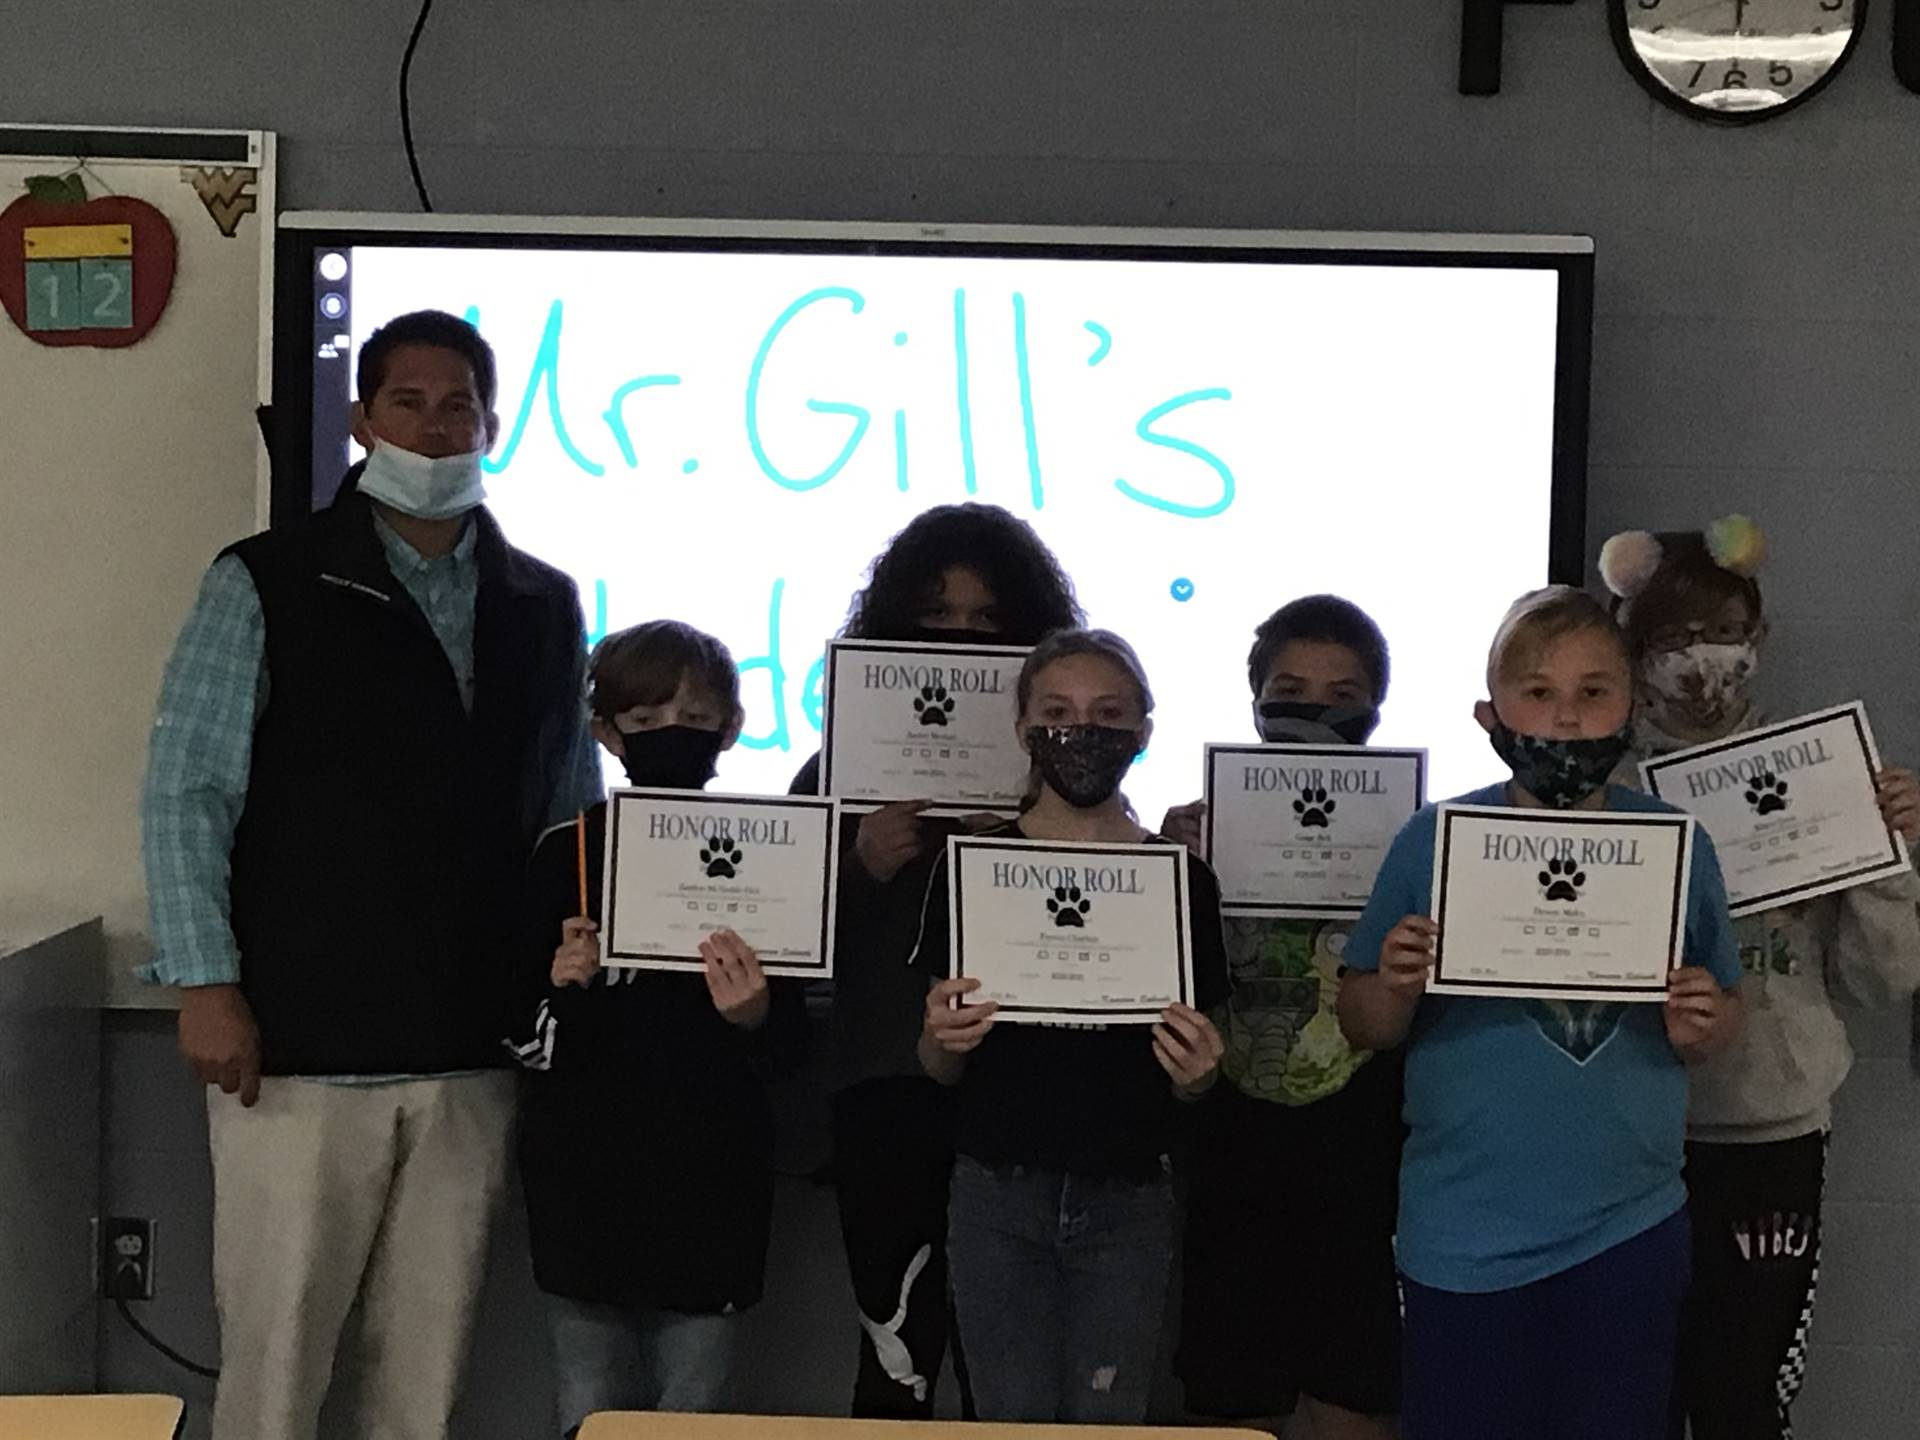 Mr. Gill's 4th Grade Class